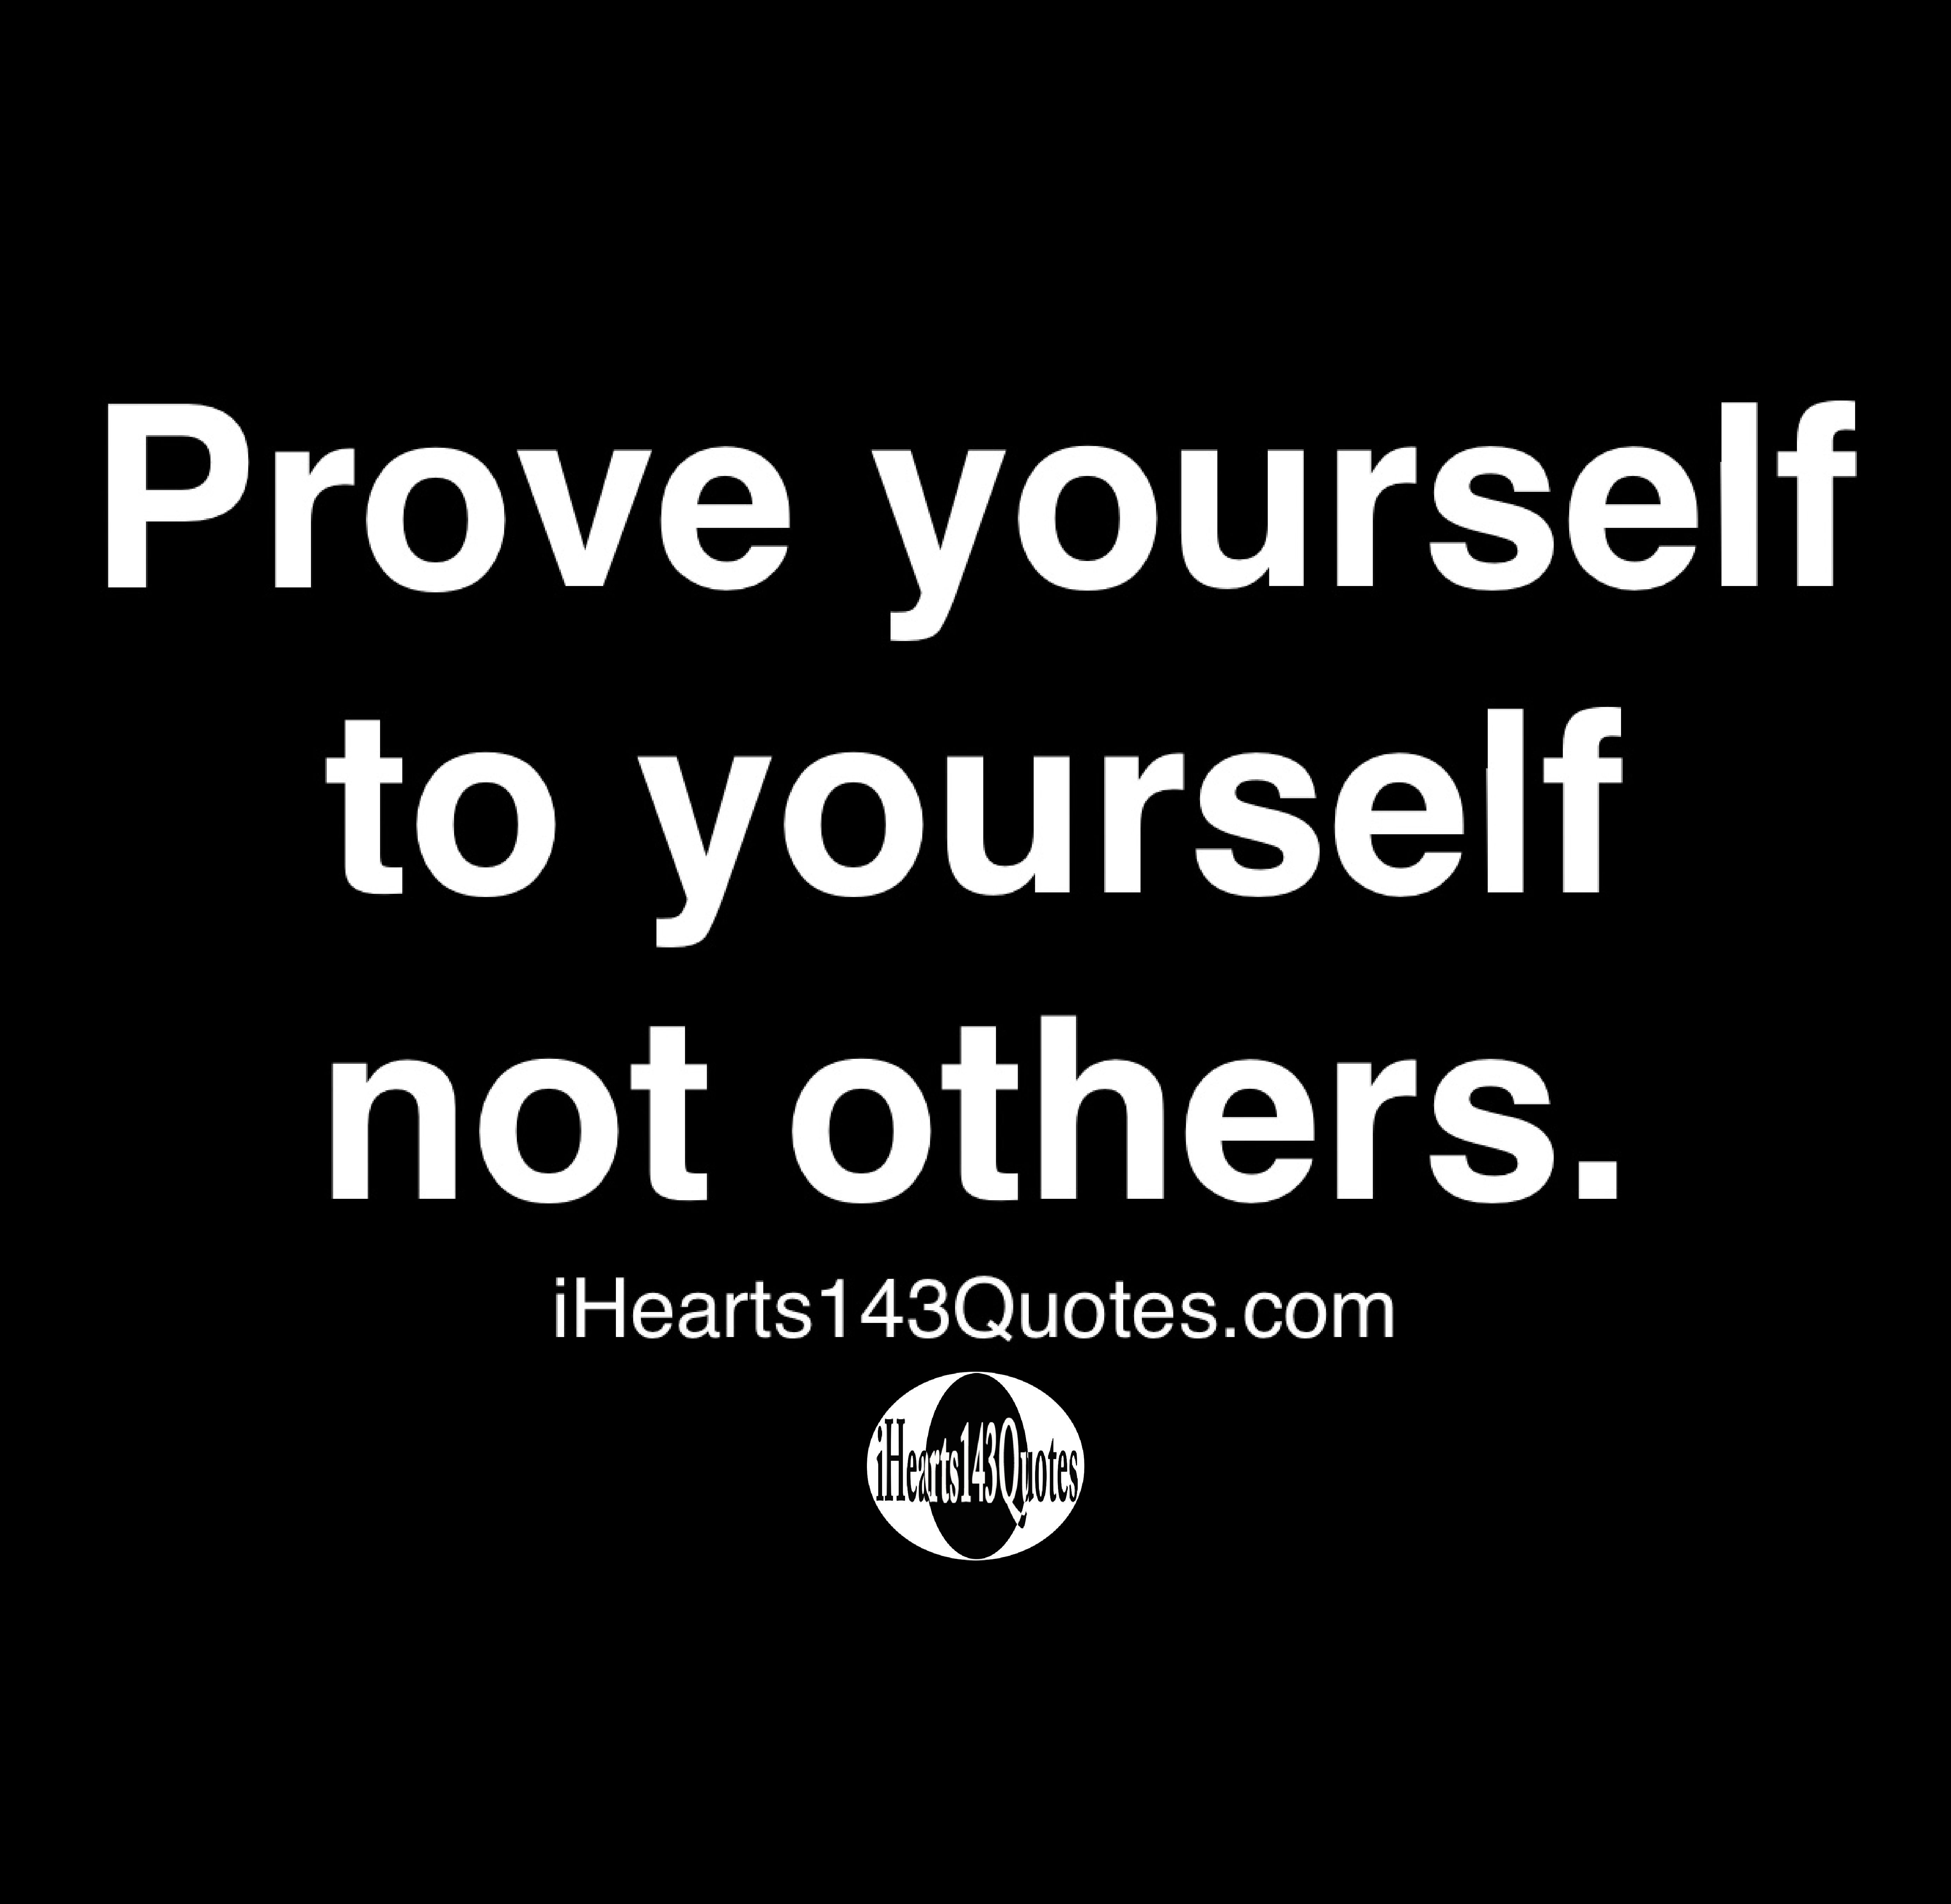 Prove yourself to yourself not others - Quotes